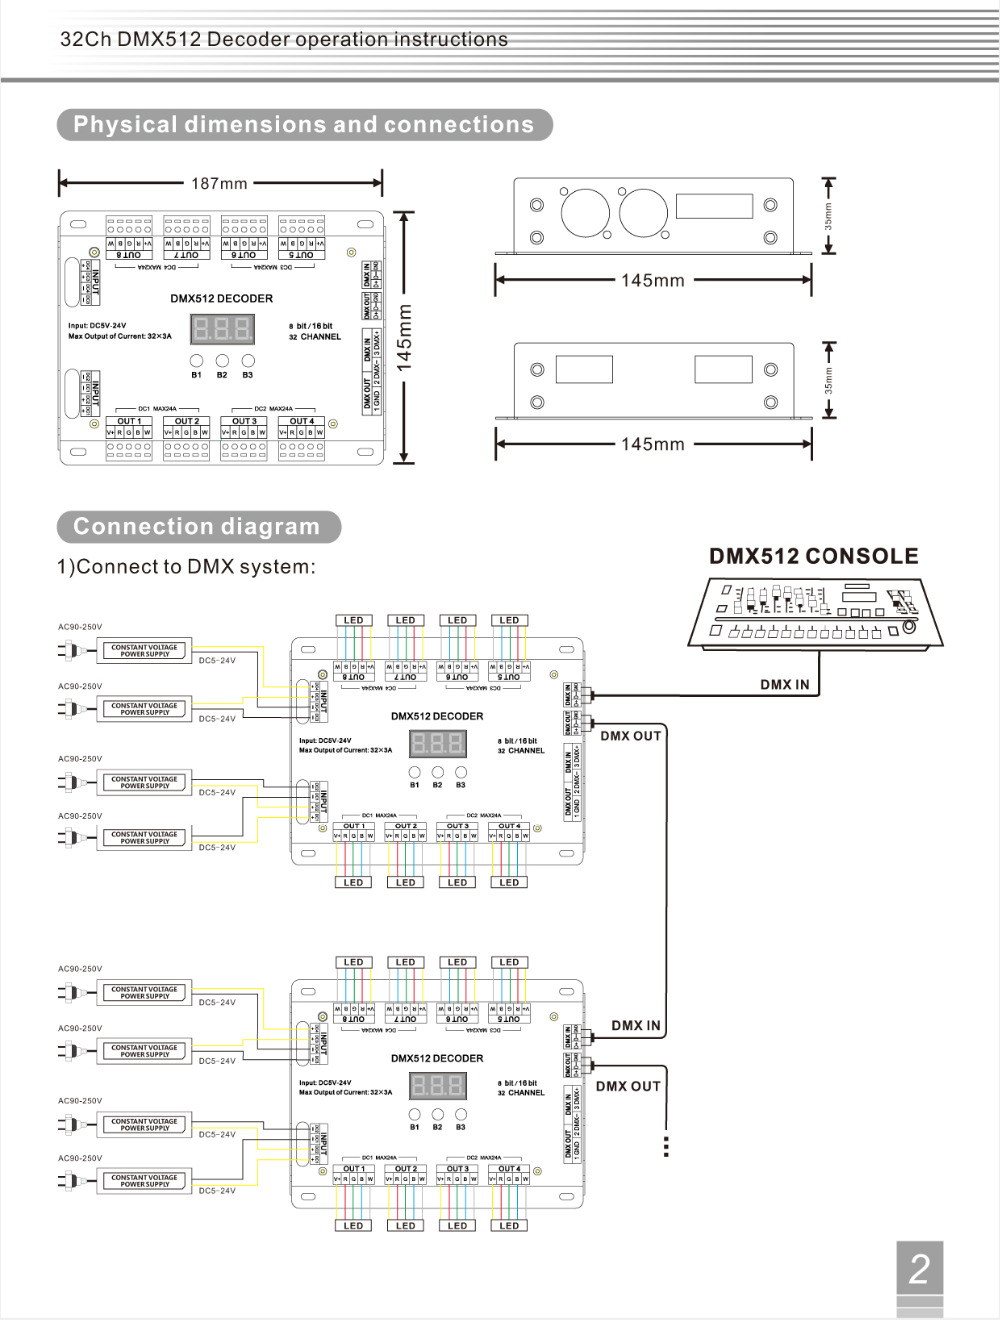 Dmx Decoder Wiring Diagram 6 Pin : 32 Wiring Diagram Images - Wiring ...